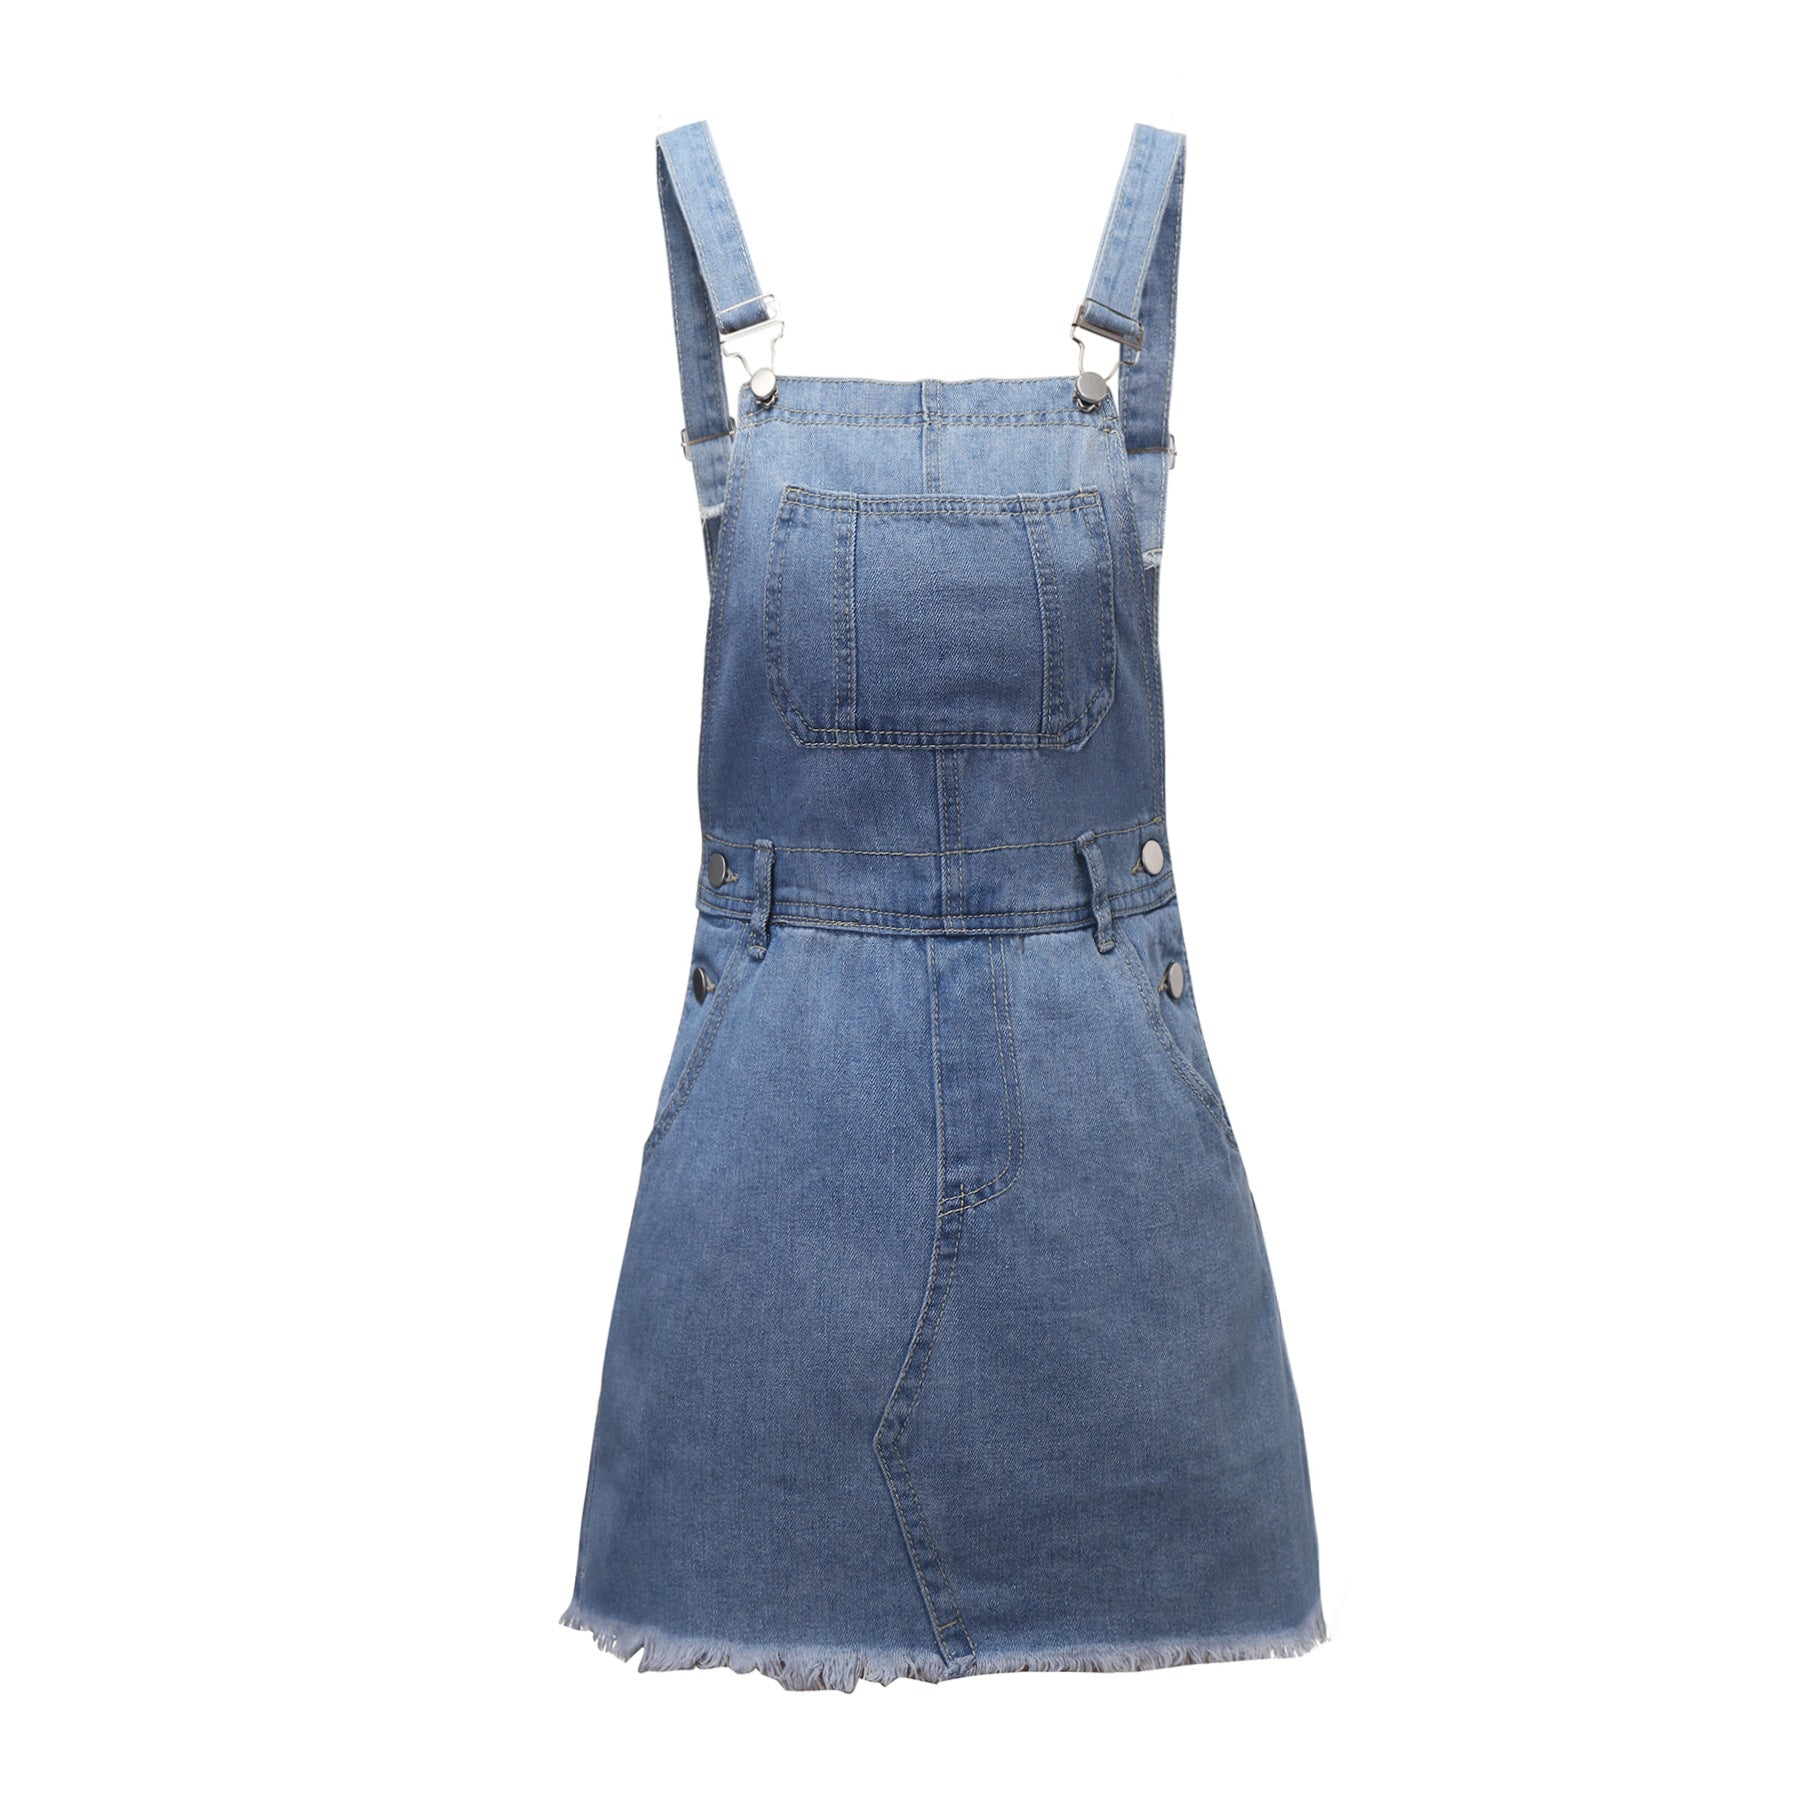 Fashionable Denim Half Dress Backstrap Dress